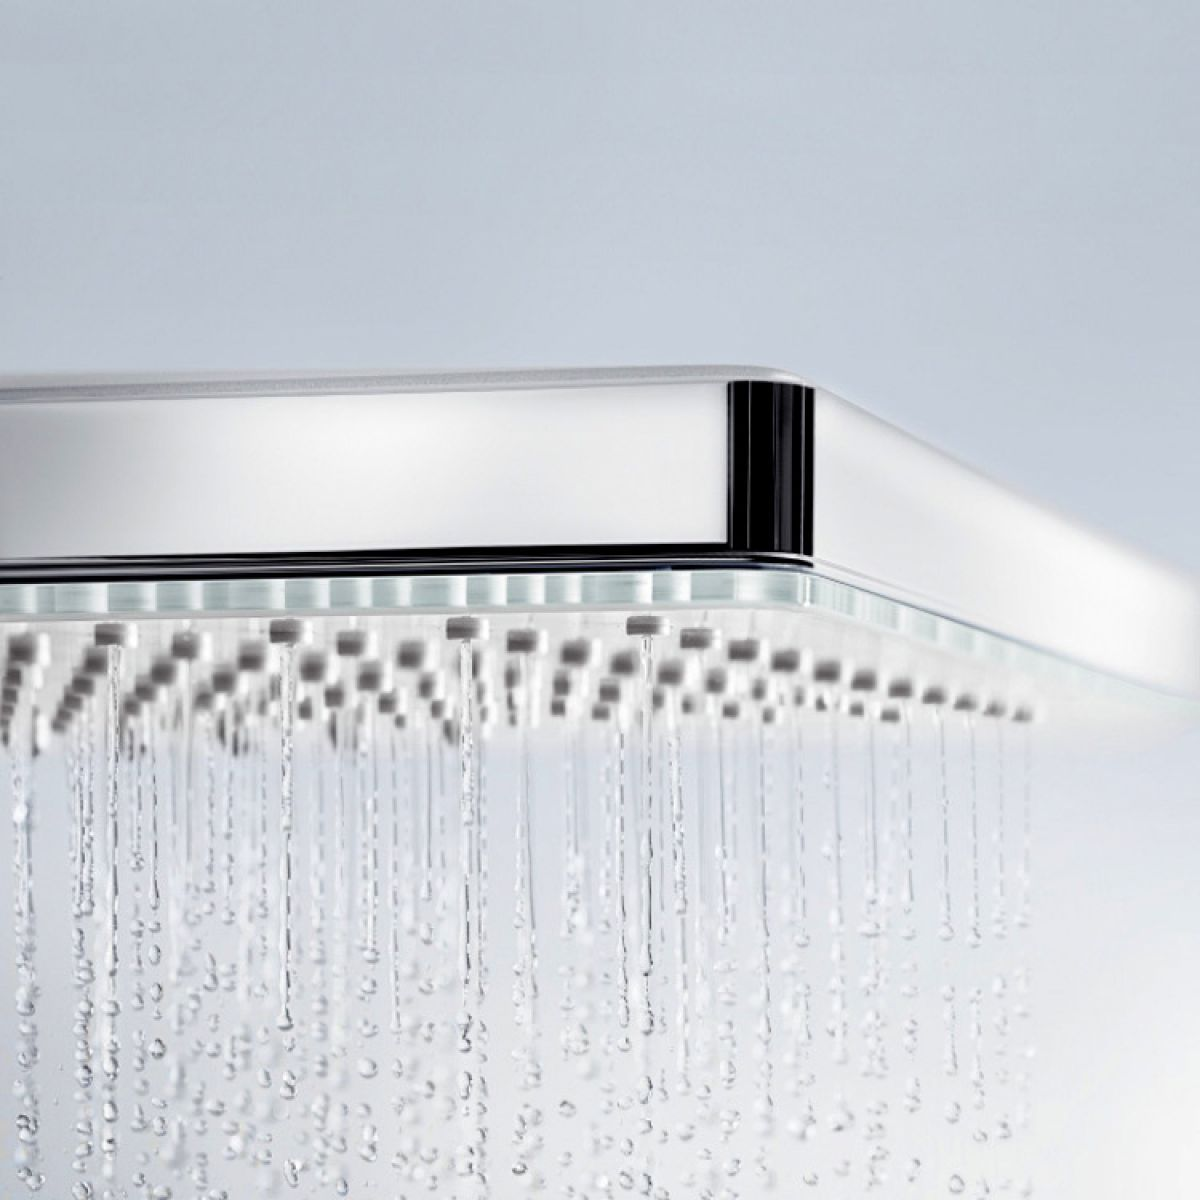 air handheld hansgrohe depot beautiful the spray showerheads rainmaker mount raindance in with home white select s whitechrome arm hand head chrome shower